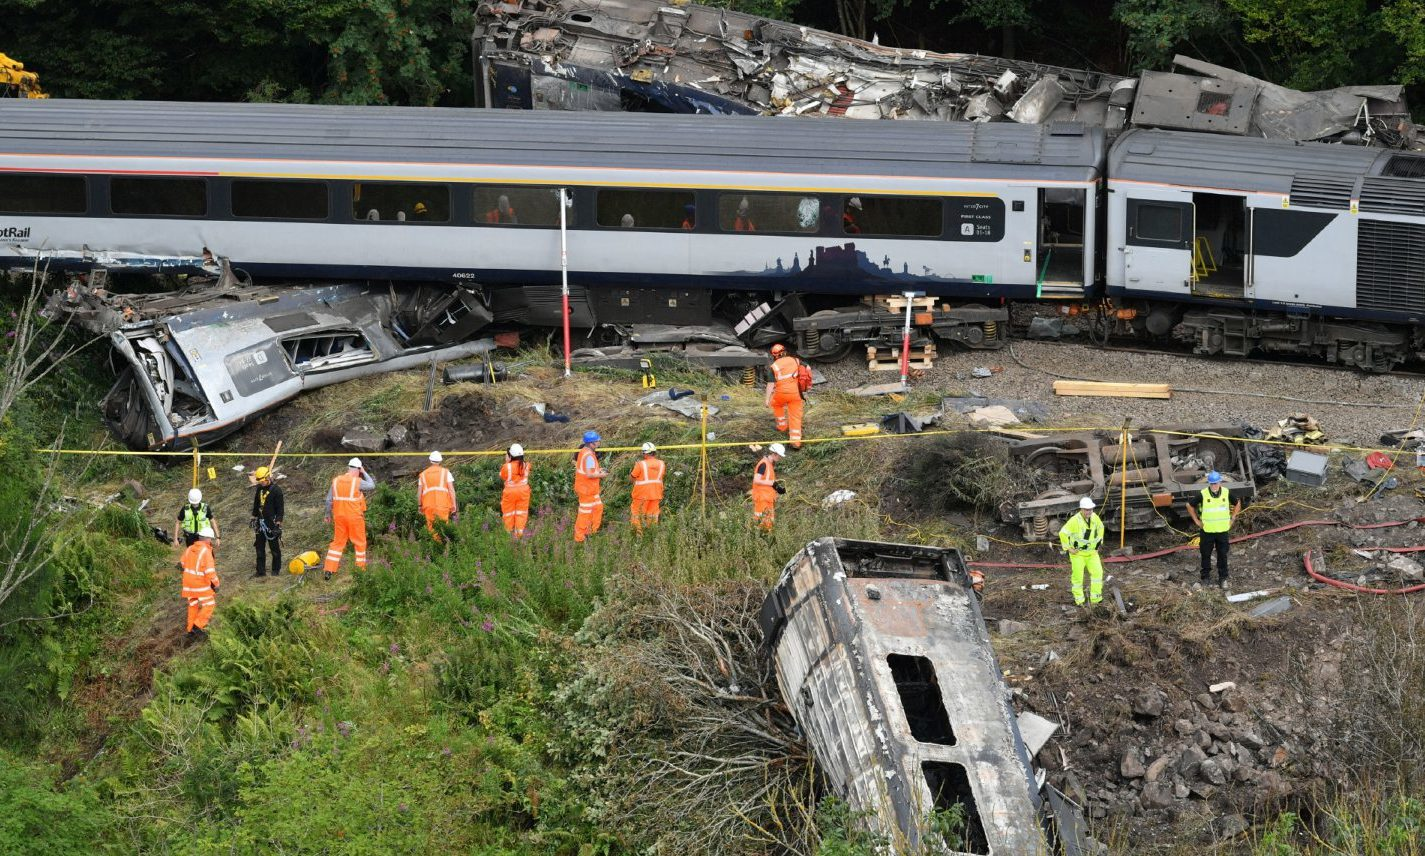 Emergency services inspect the scene of the incident near Stonehaven.